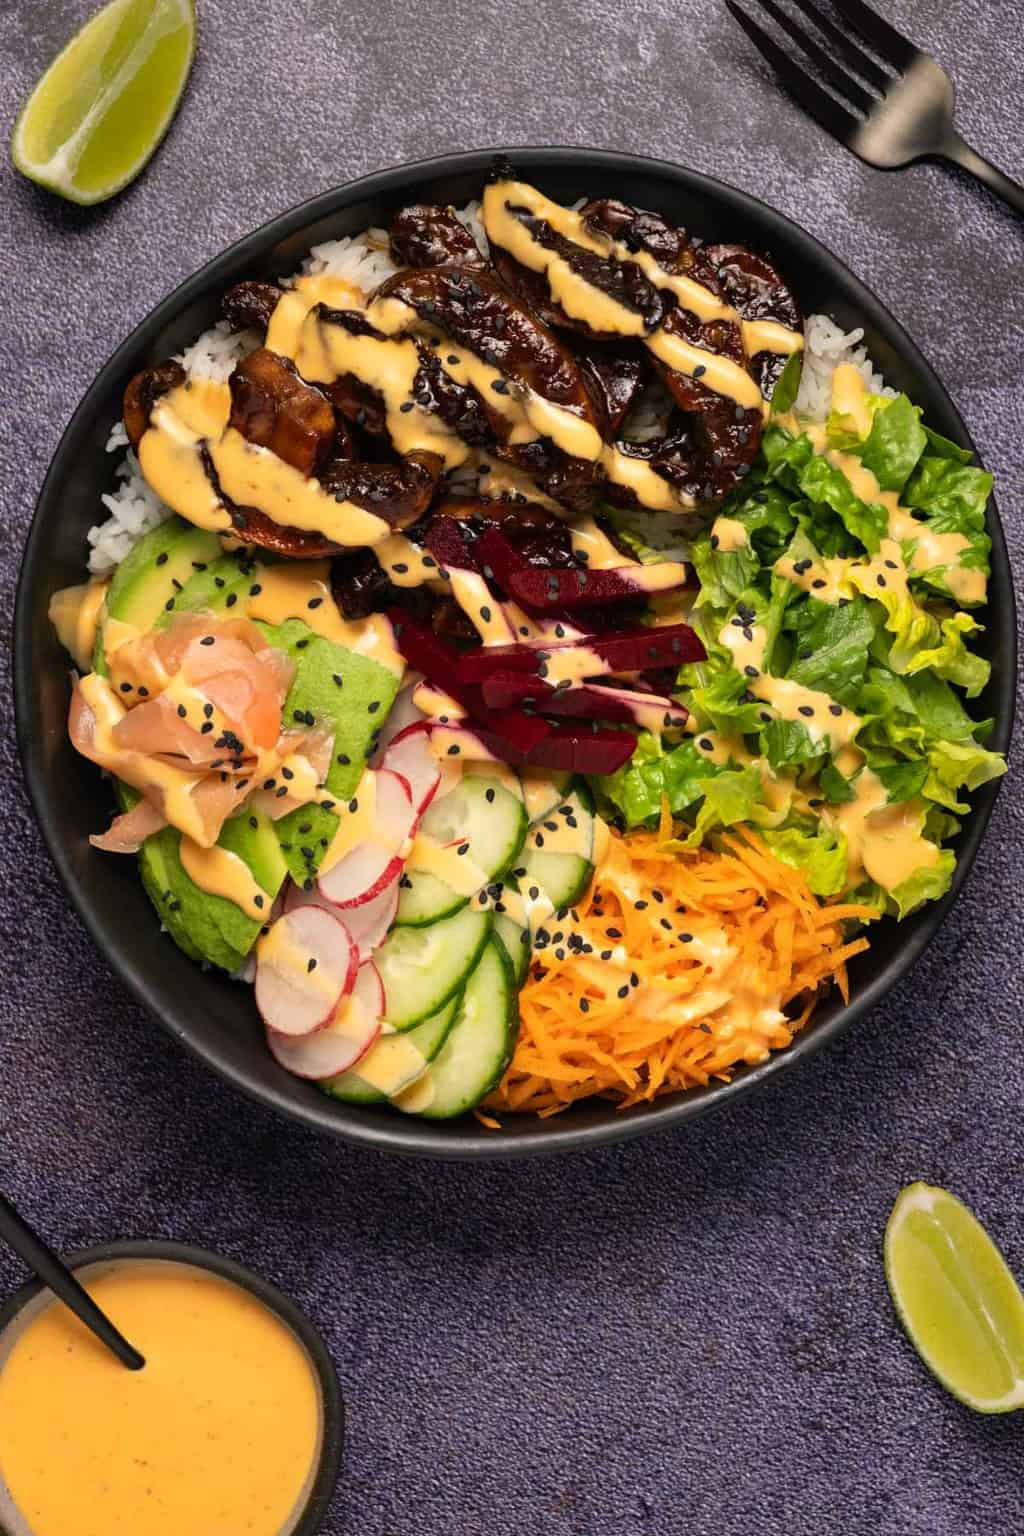 Black bowl filled with rice, salad and veggies and a drizzled dressing.